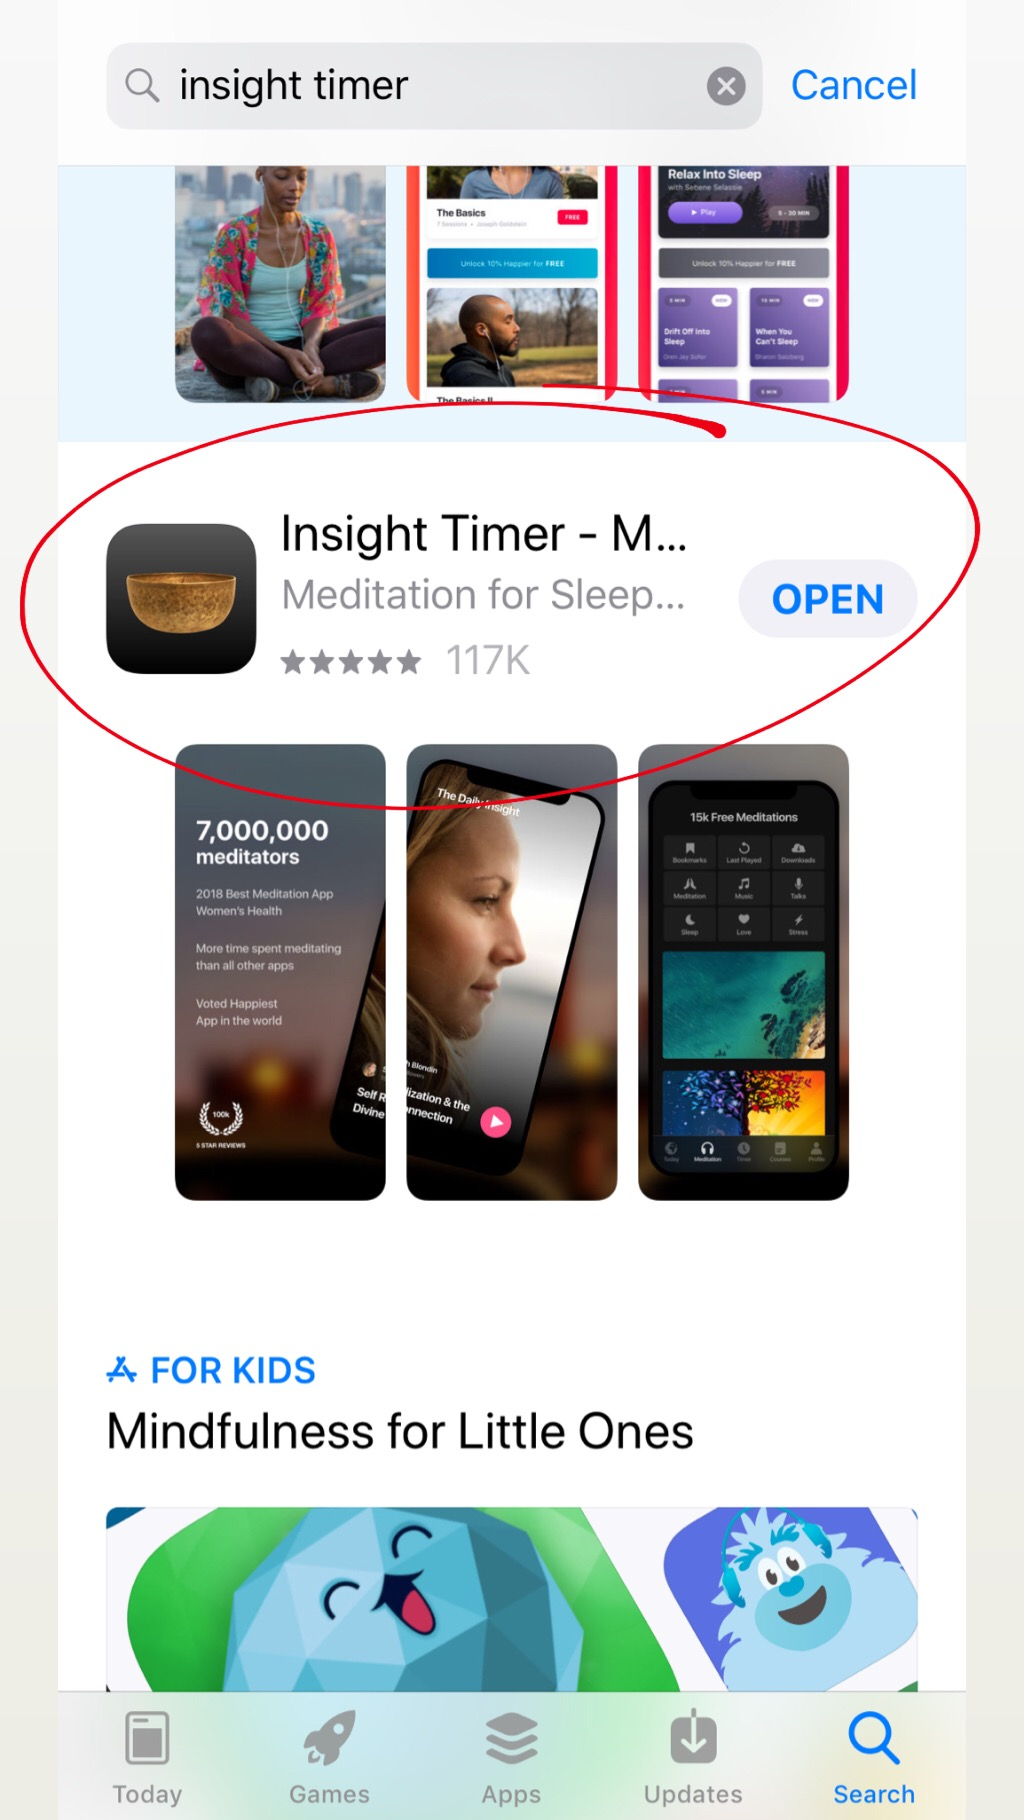 This is what Insight Timer looks like in the Apple App Store.